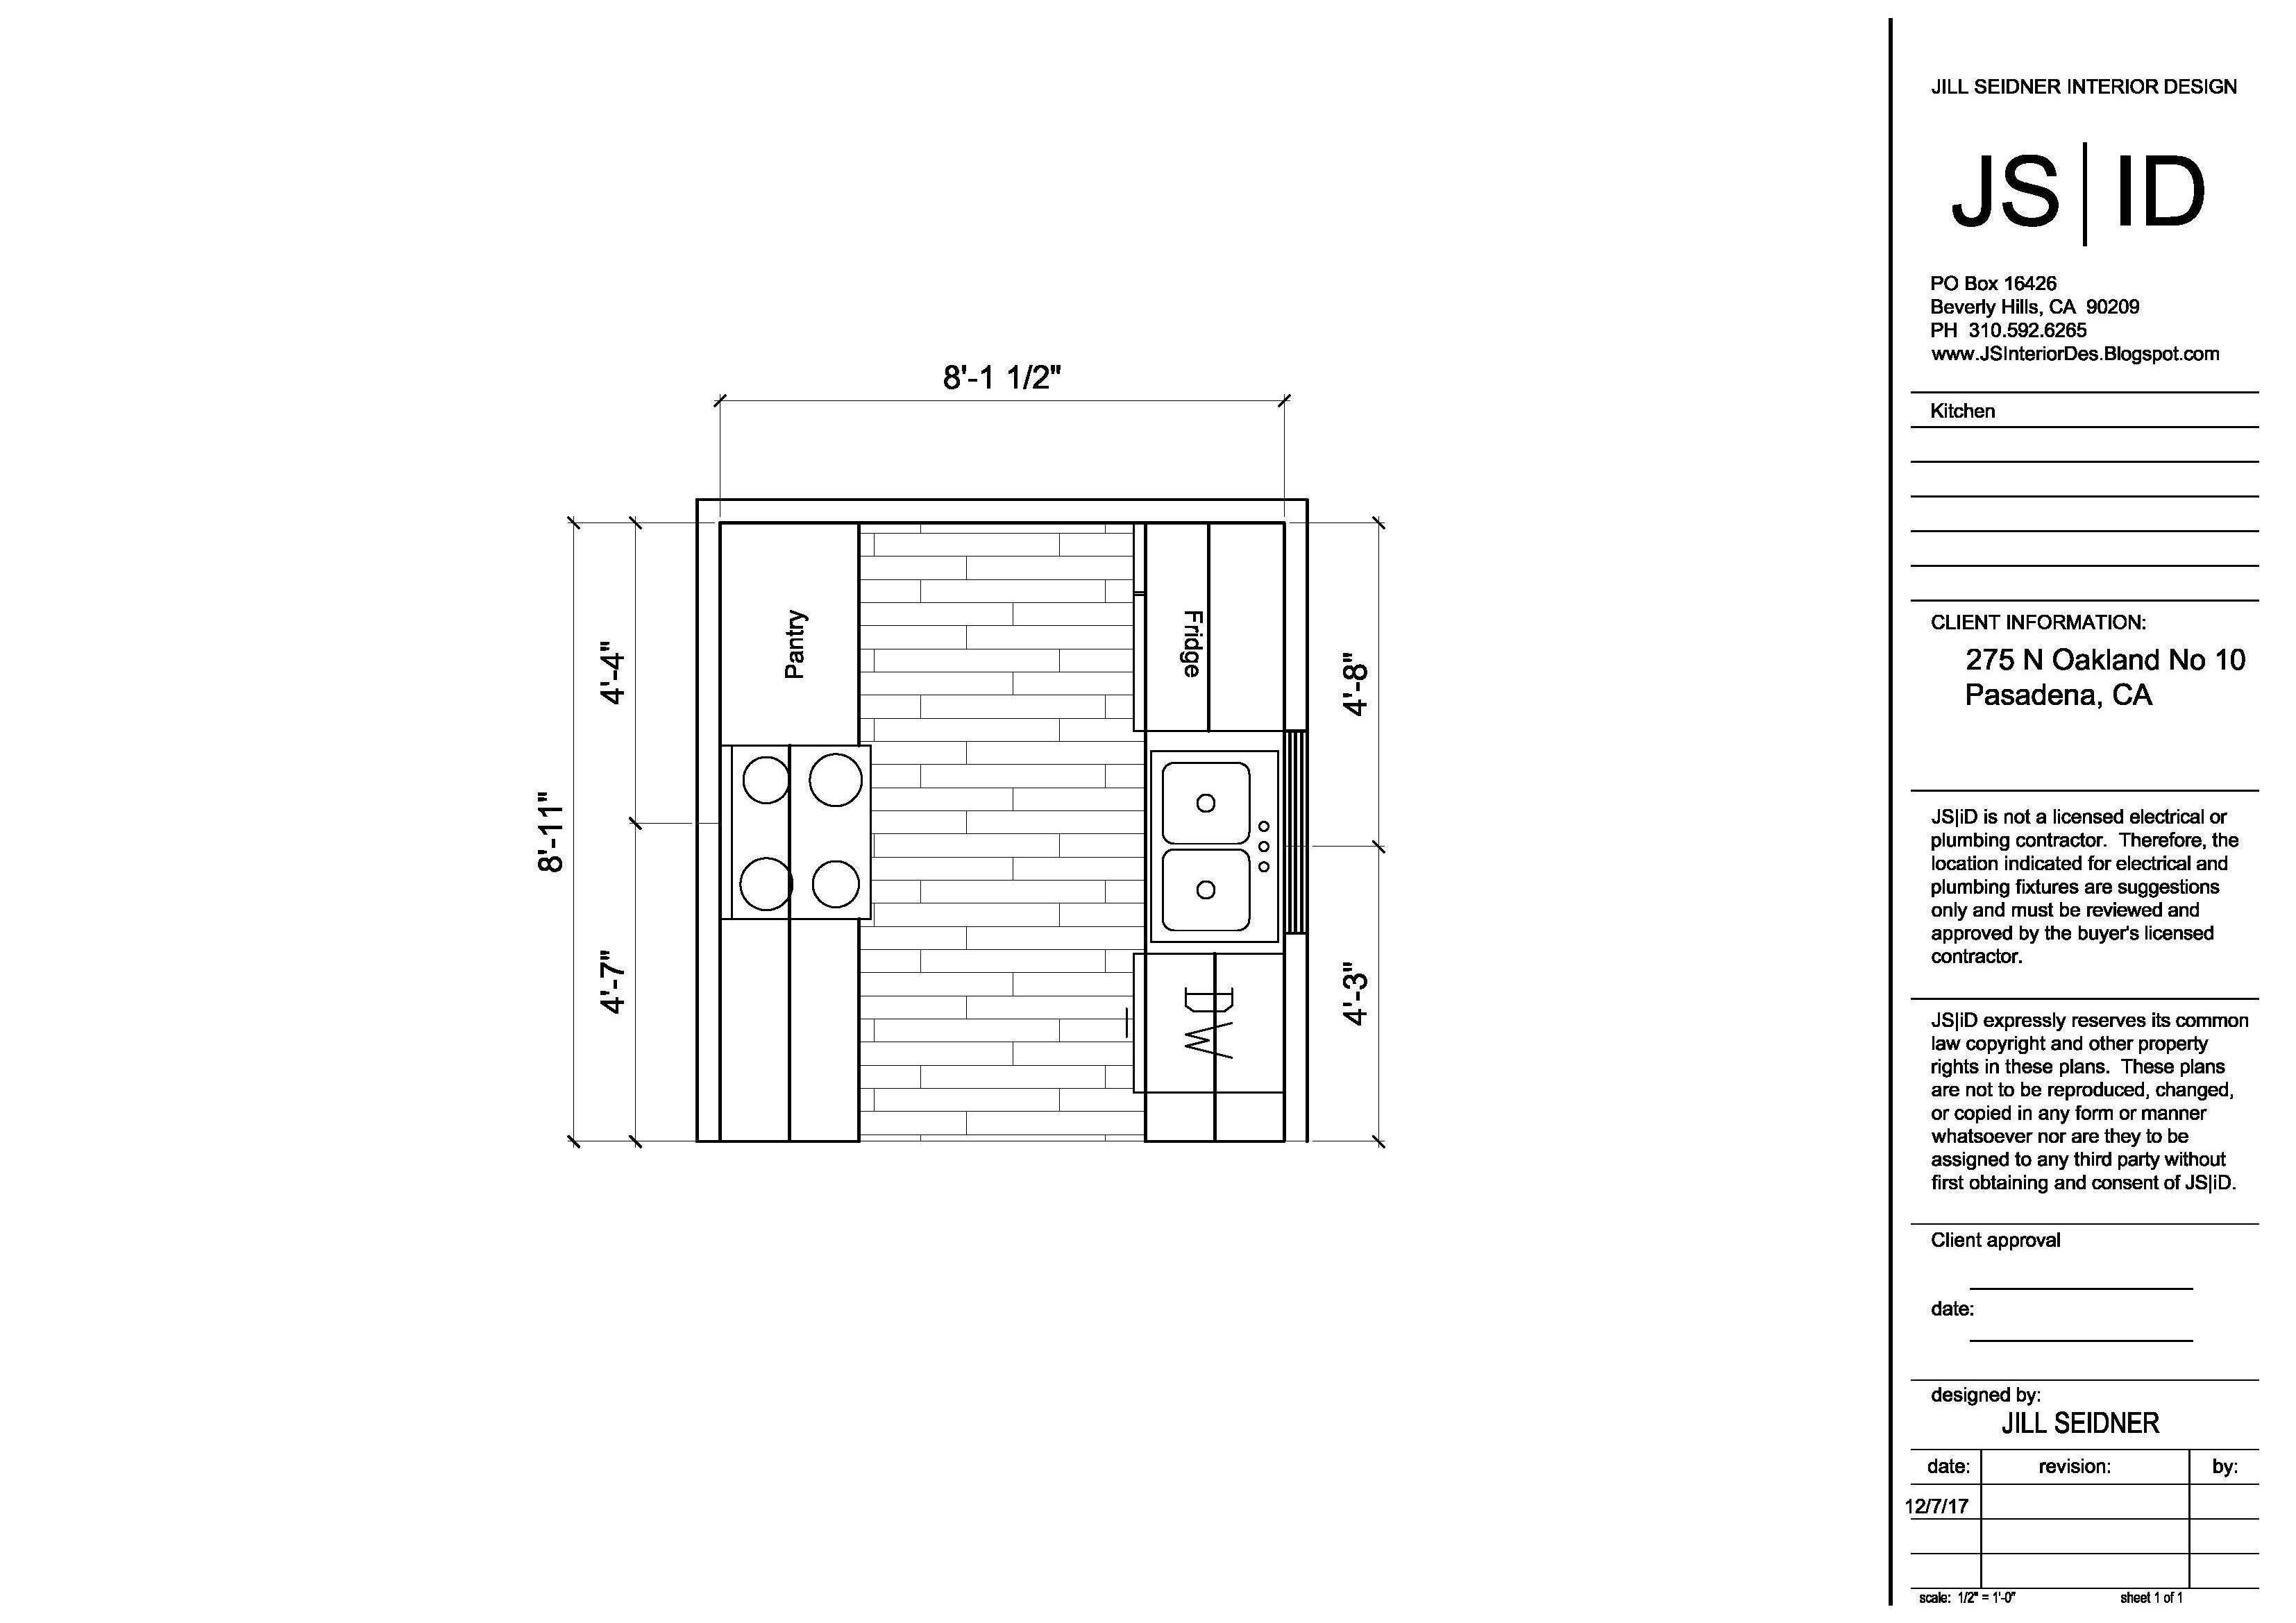 Pasadena ca tenant improvement project kitchen remodel plan drawings interiordesign also rh pinterest